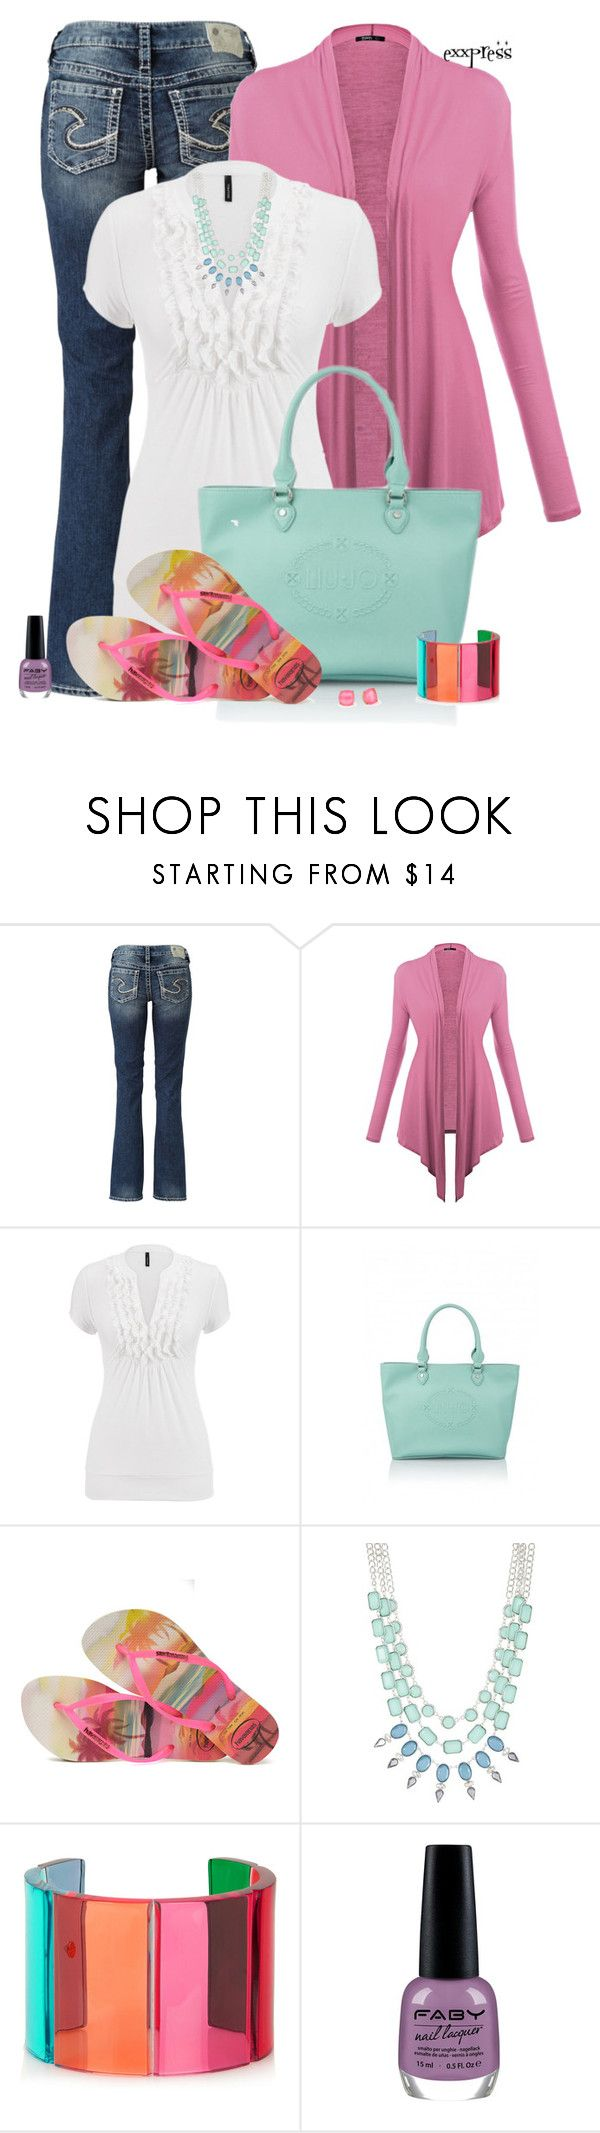 """""""So Long, Farewell."""" by exxpress ❤ liked on Polyvore featuring Silver Jeans Co., maurices, Havaianas, Robert Rose, Valentino, Kate Spade and FABY"""